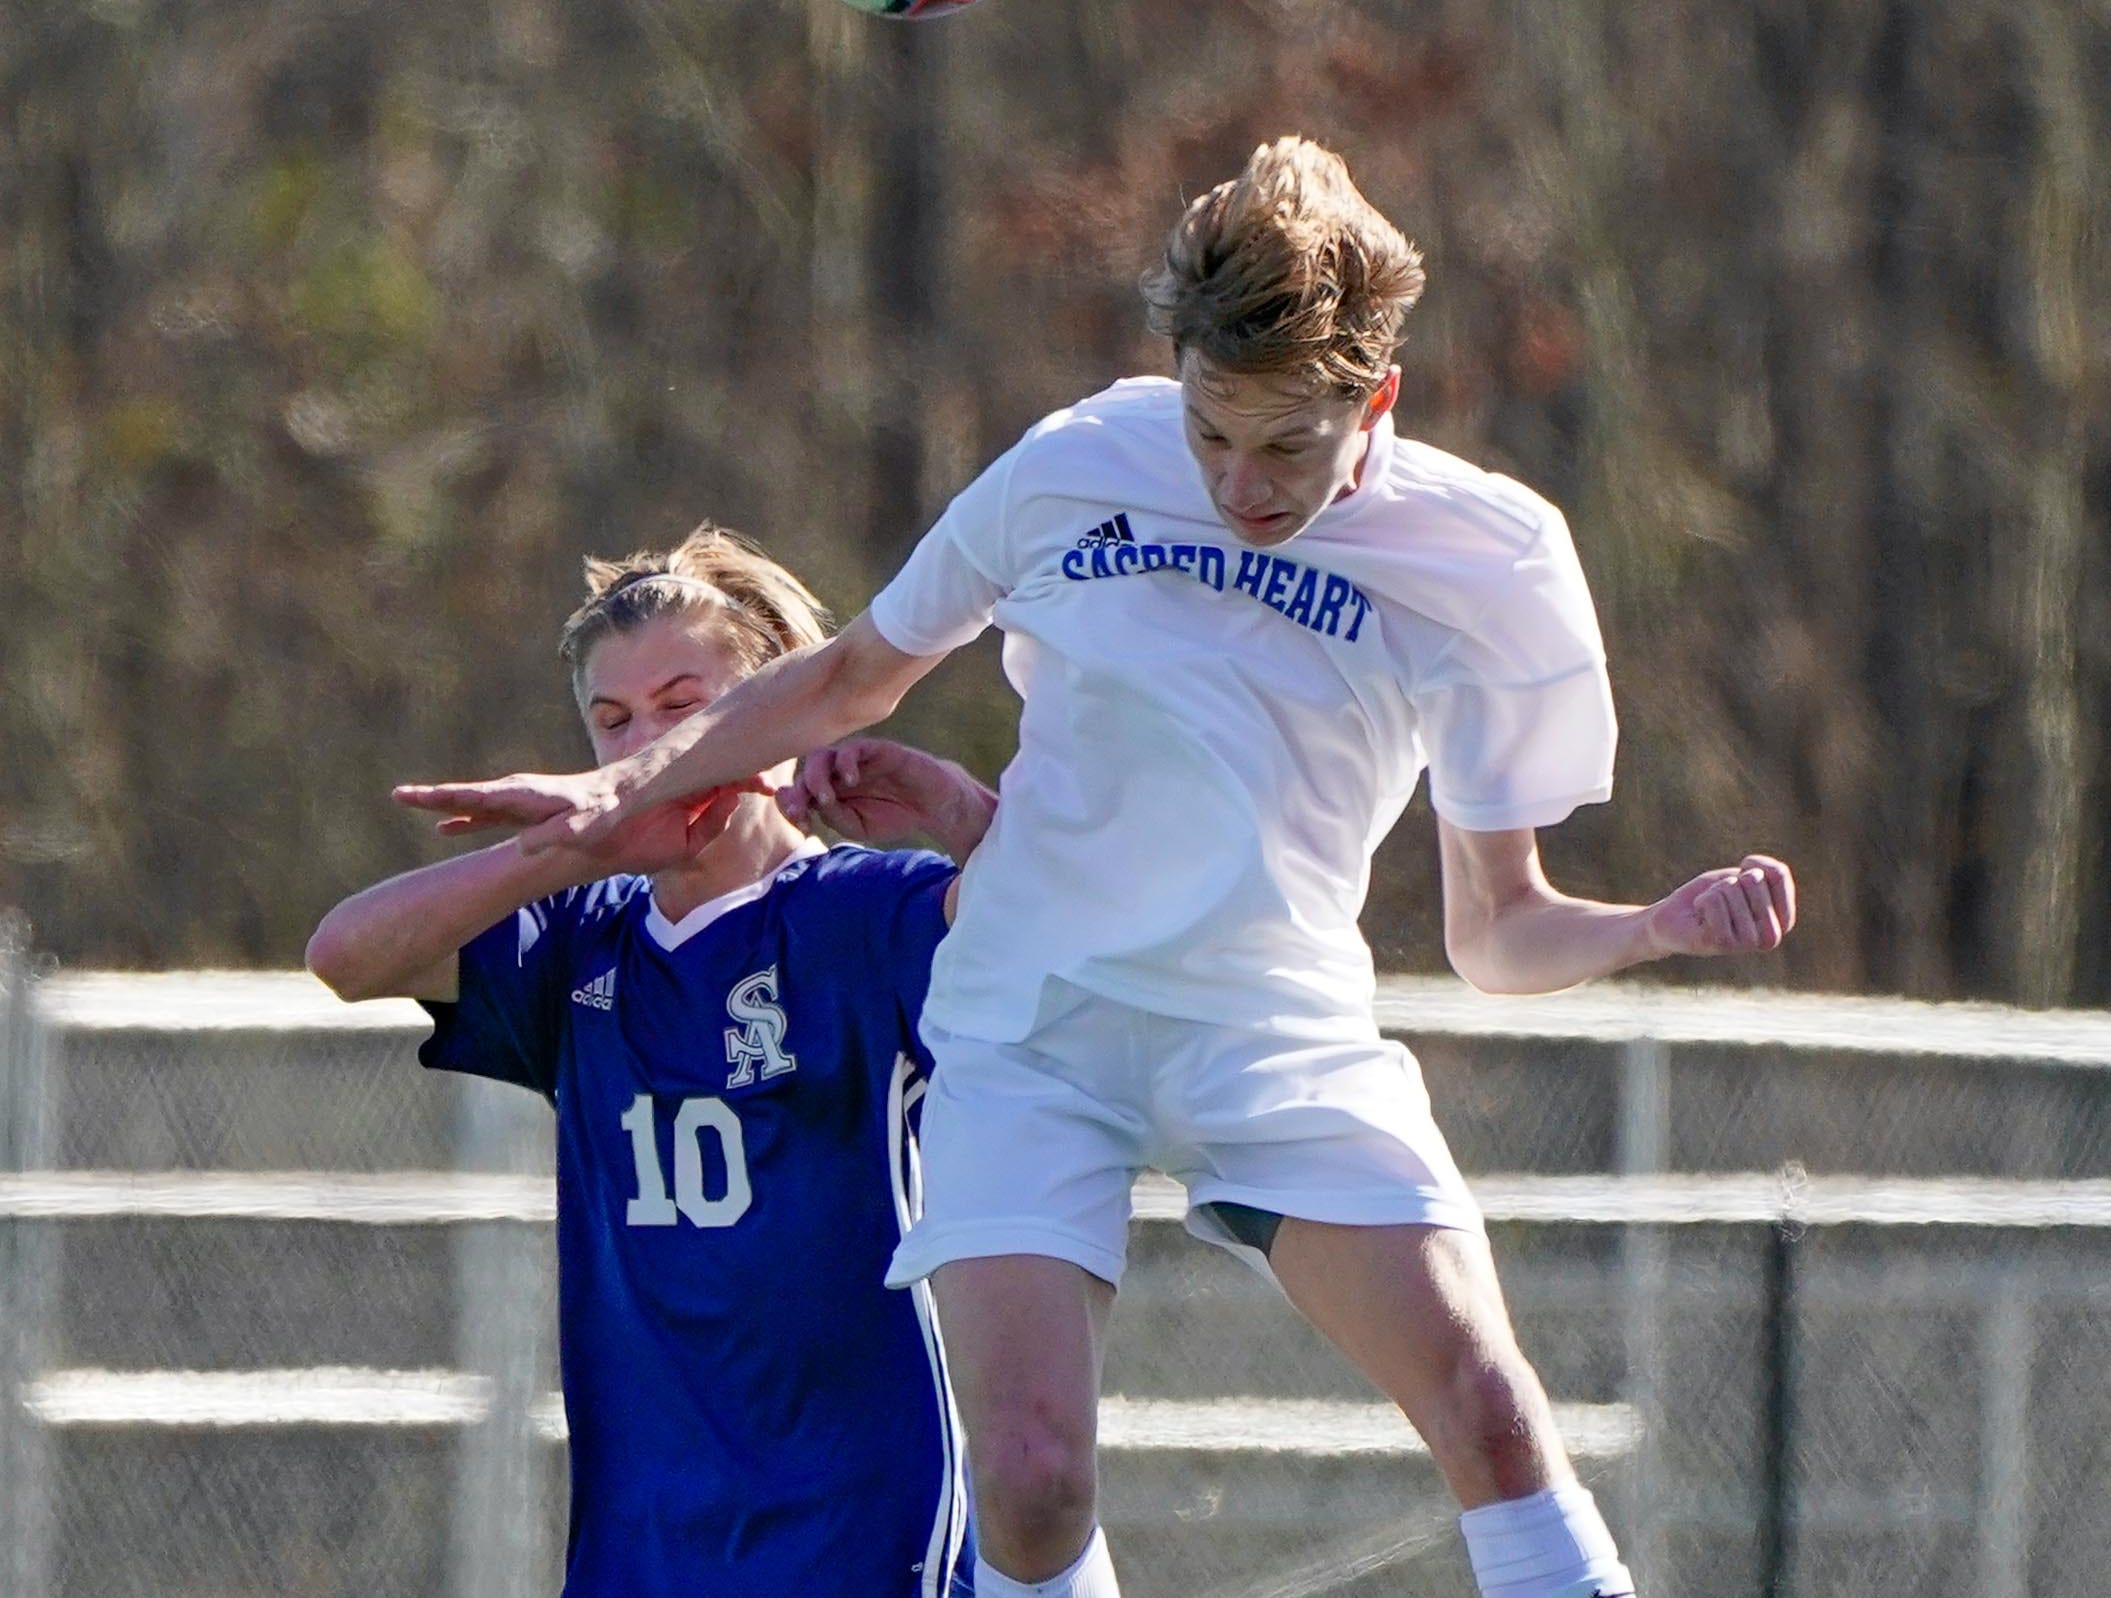 Sacred Heart's Heath Hogan (16) heads a ball against St. Andrew's Jackson Bataille (10) during the MHSAA 1A,2A,3A  Boys Soccer Championships held at Brandon High School in Brandon, MS, Saturday February 9, 2019.(Bob Smith-For The Clarion Ledger)